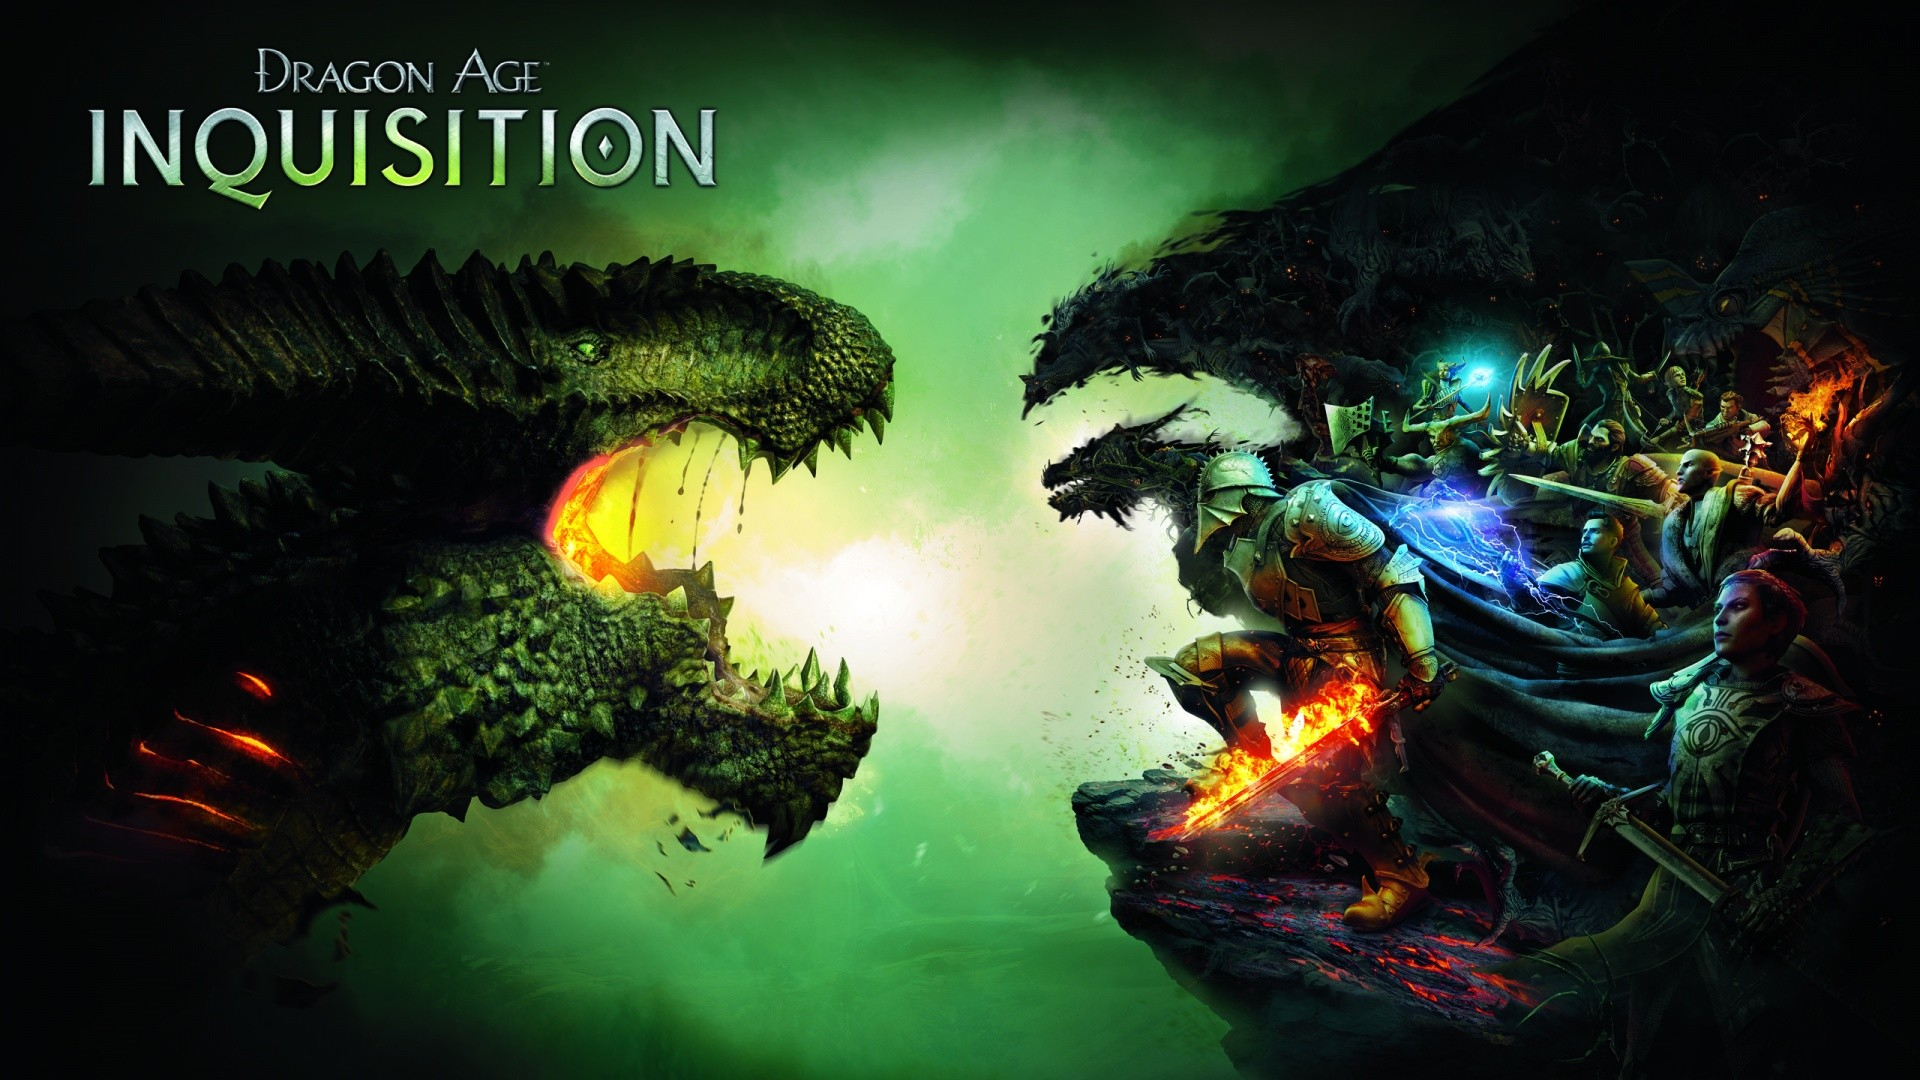 … dragon age inquisition game wallpapers in jpg format for free download  …